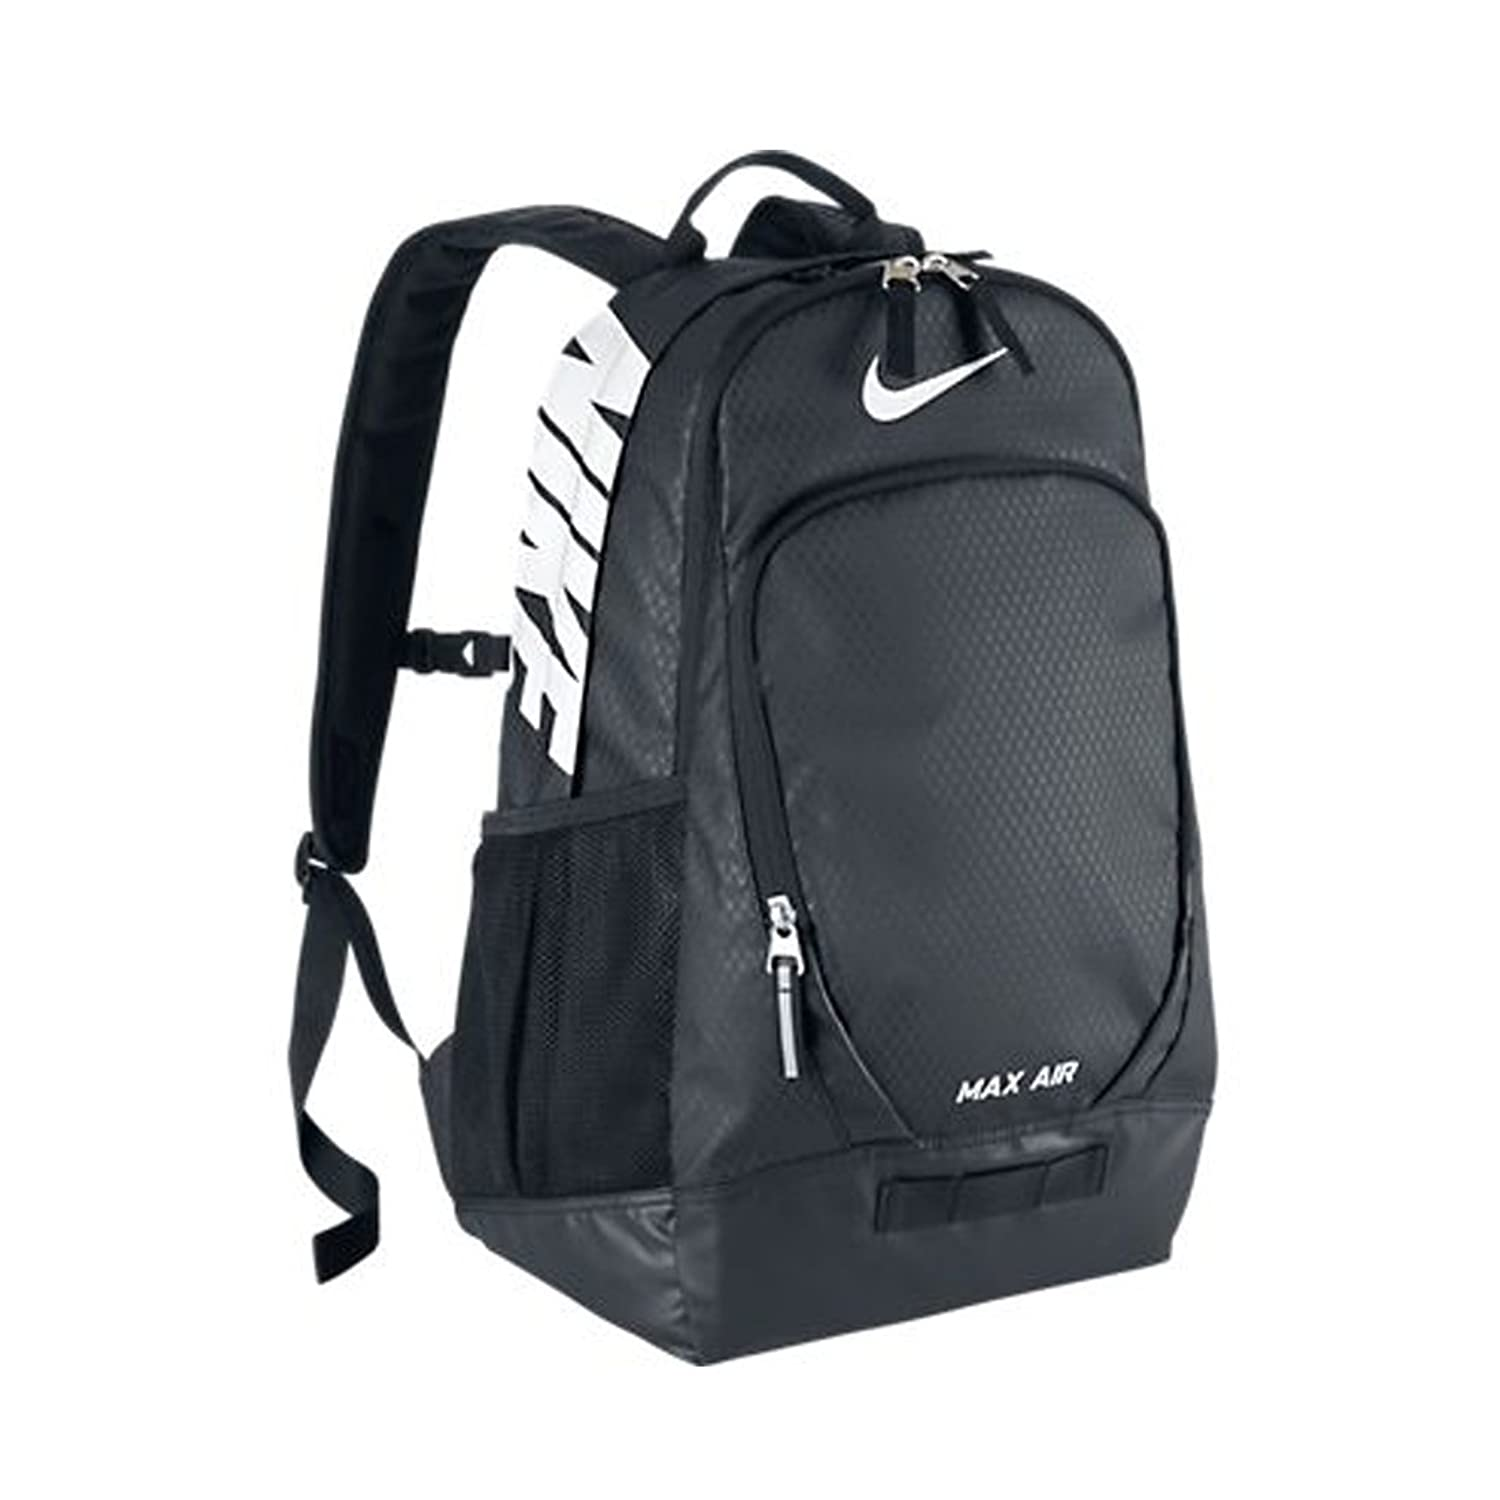 4956ab3f3a73 nike max air backpack black